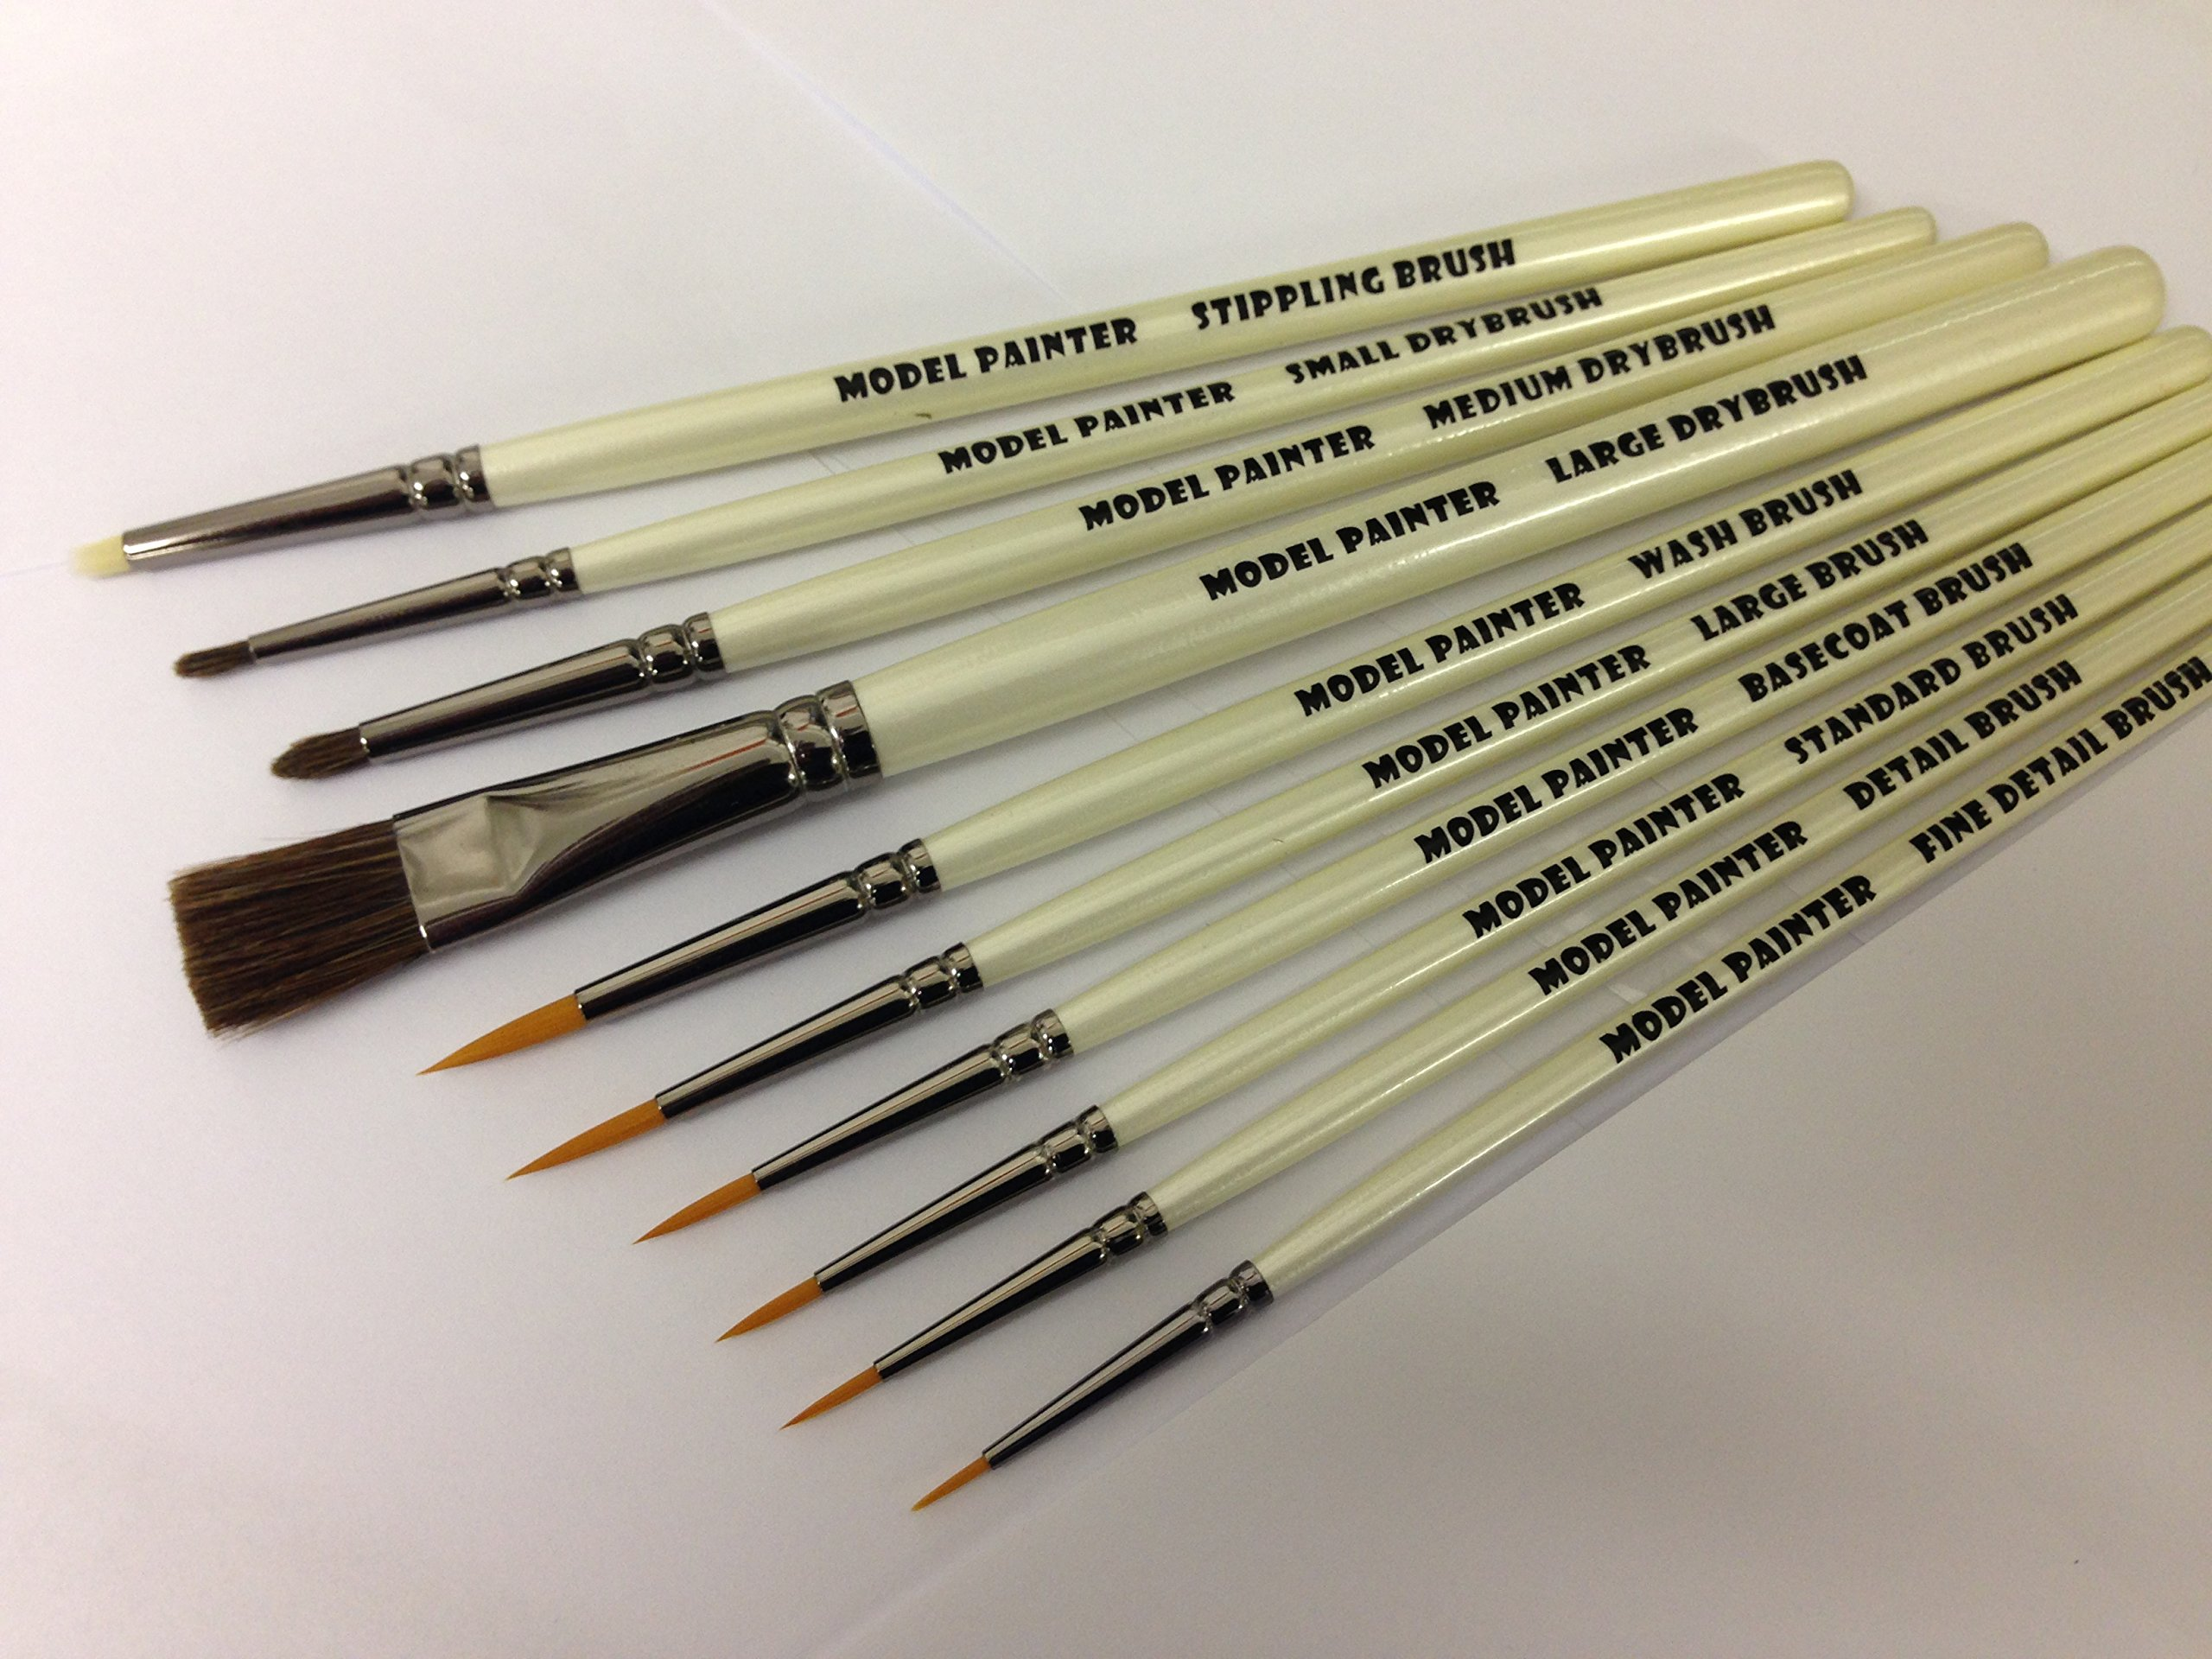 Model Painter brush set For Wargaming, Airfix, Foundry, Army Painter, Warhammer, model painting, with synthetic rounds.